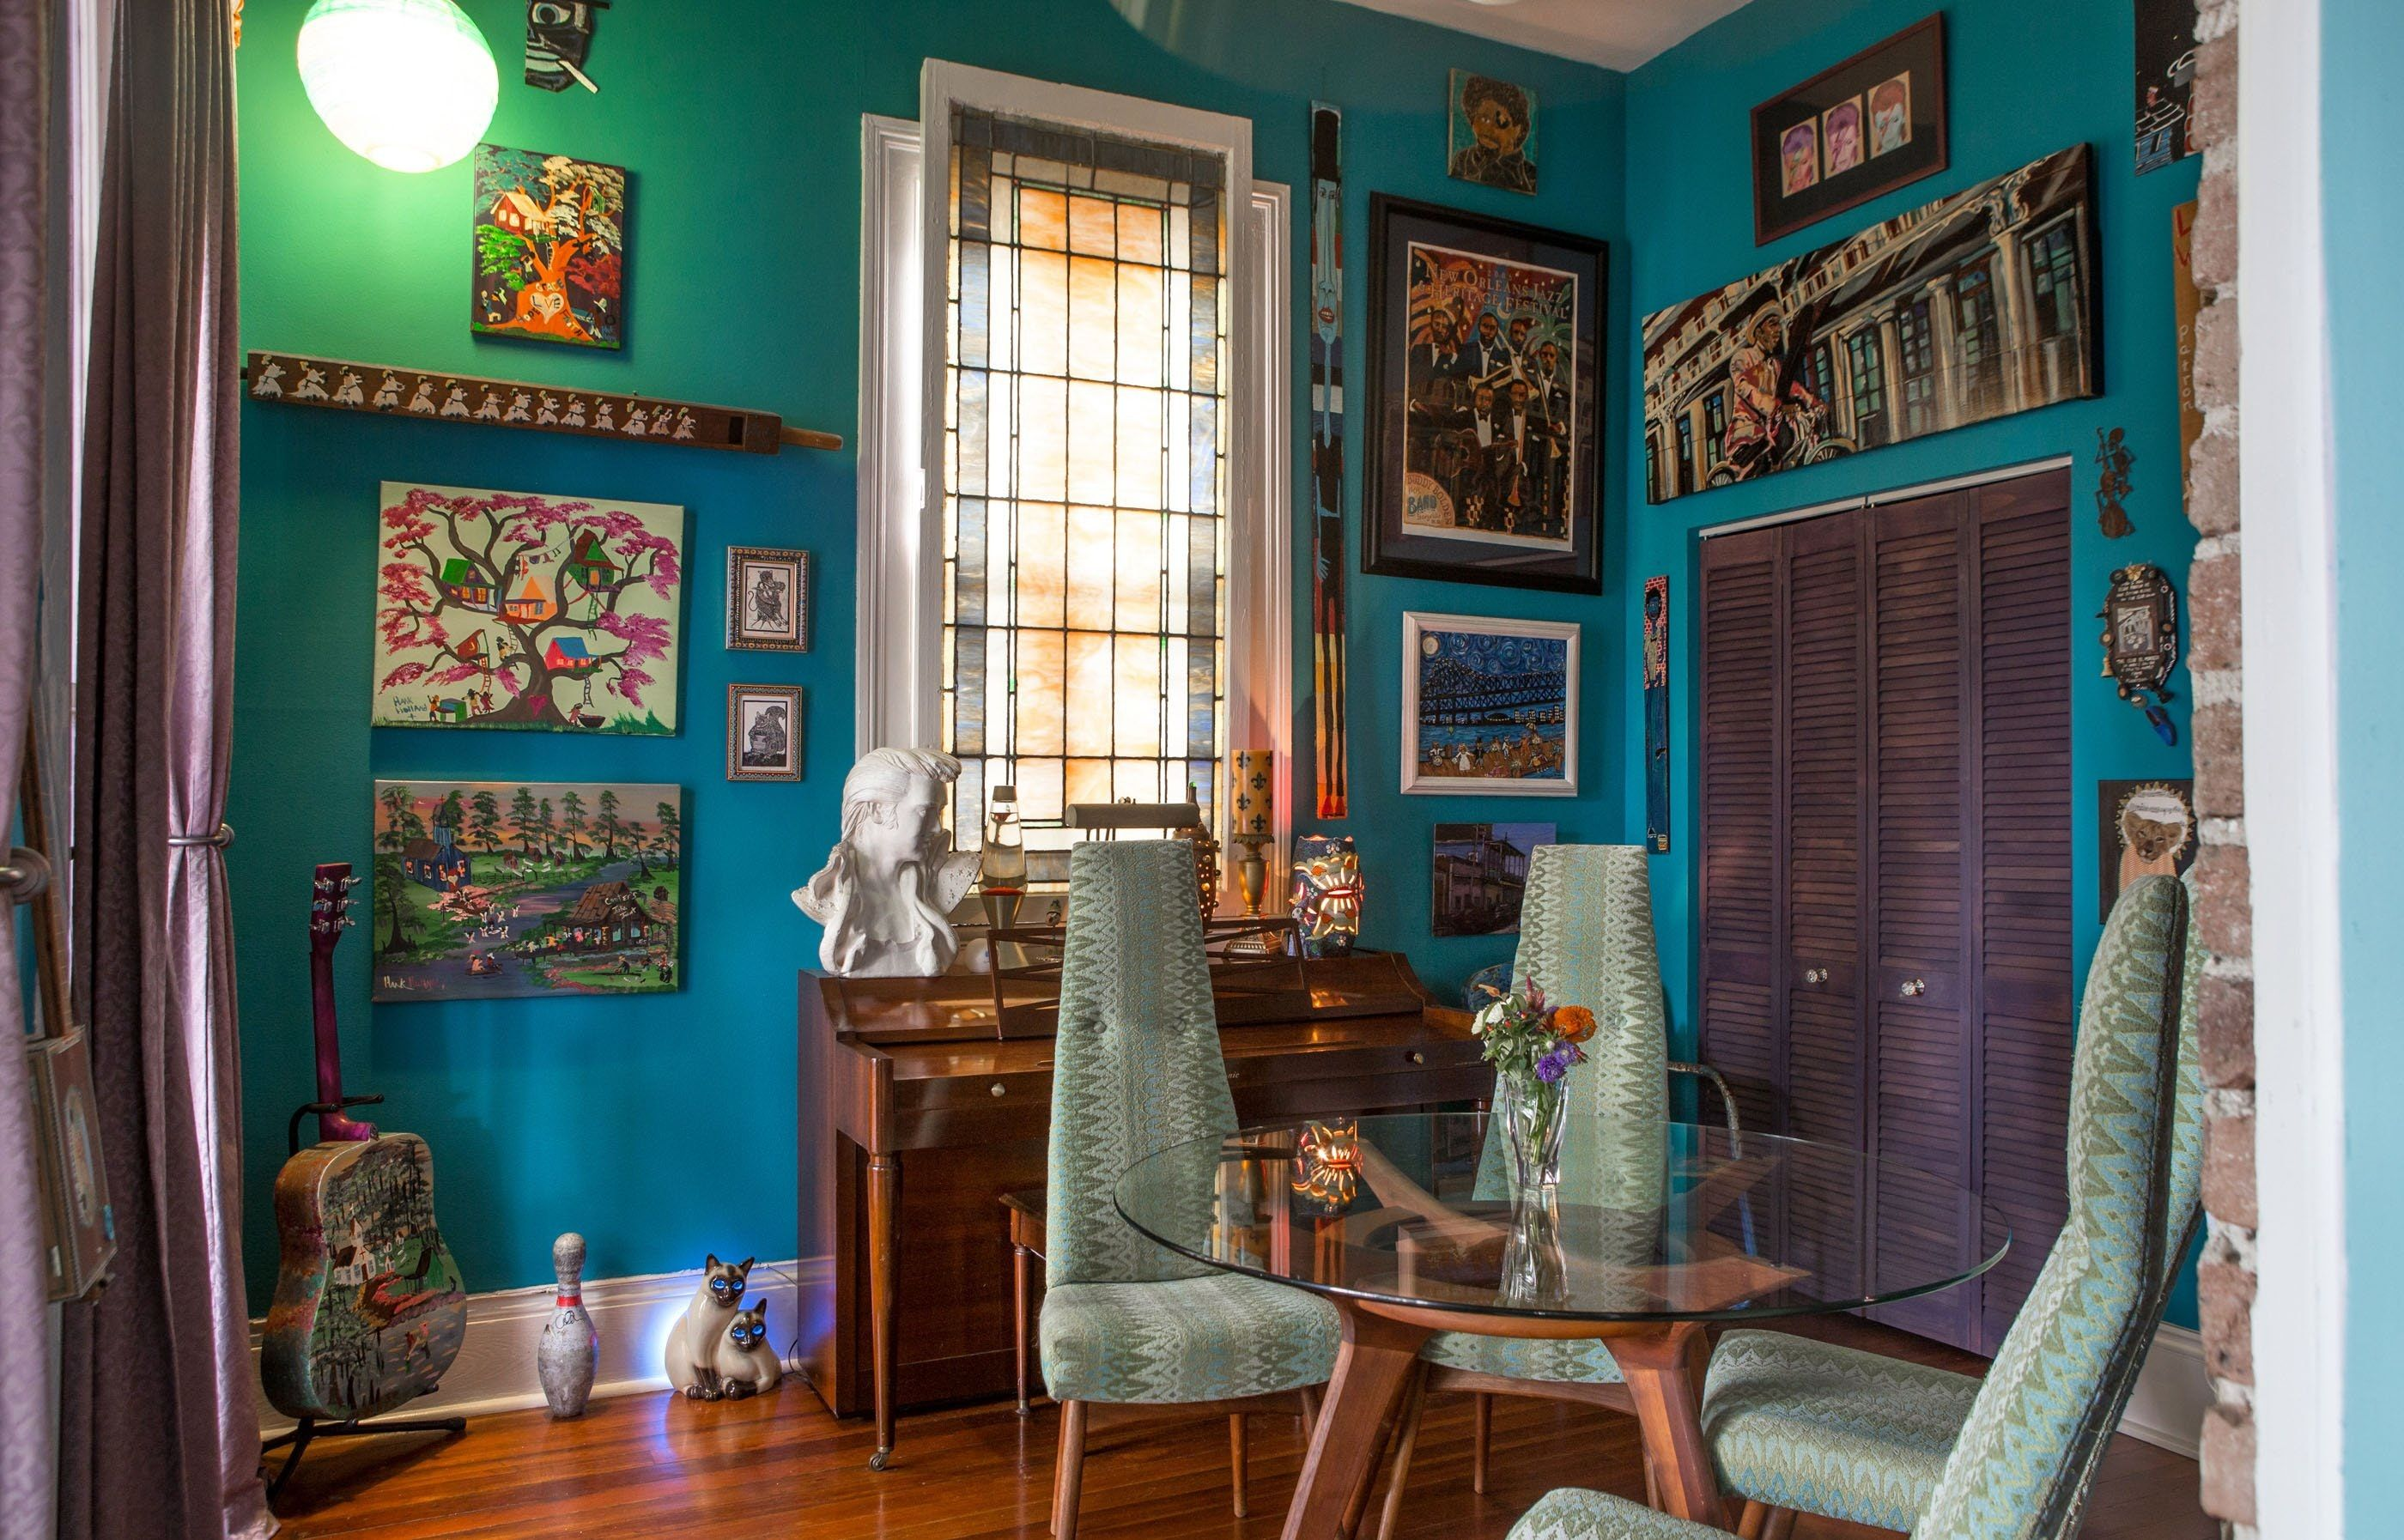 House Tour A Colorful, Art Filled New Orleans Home - Apartment